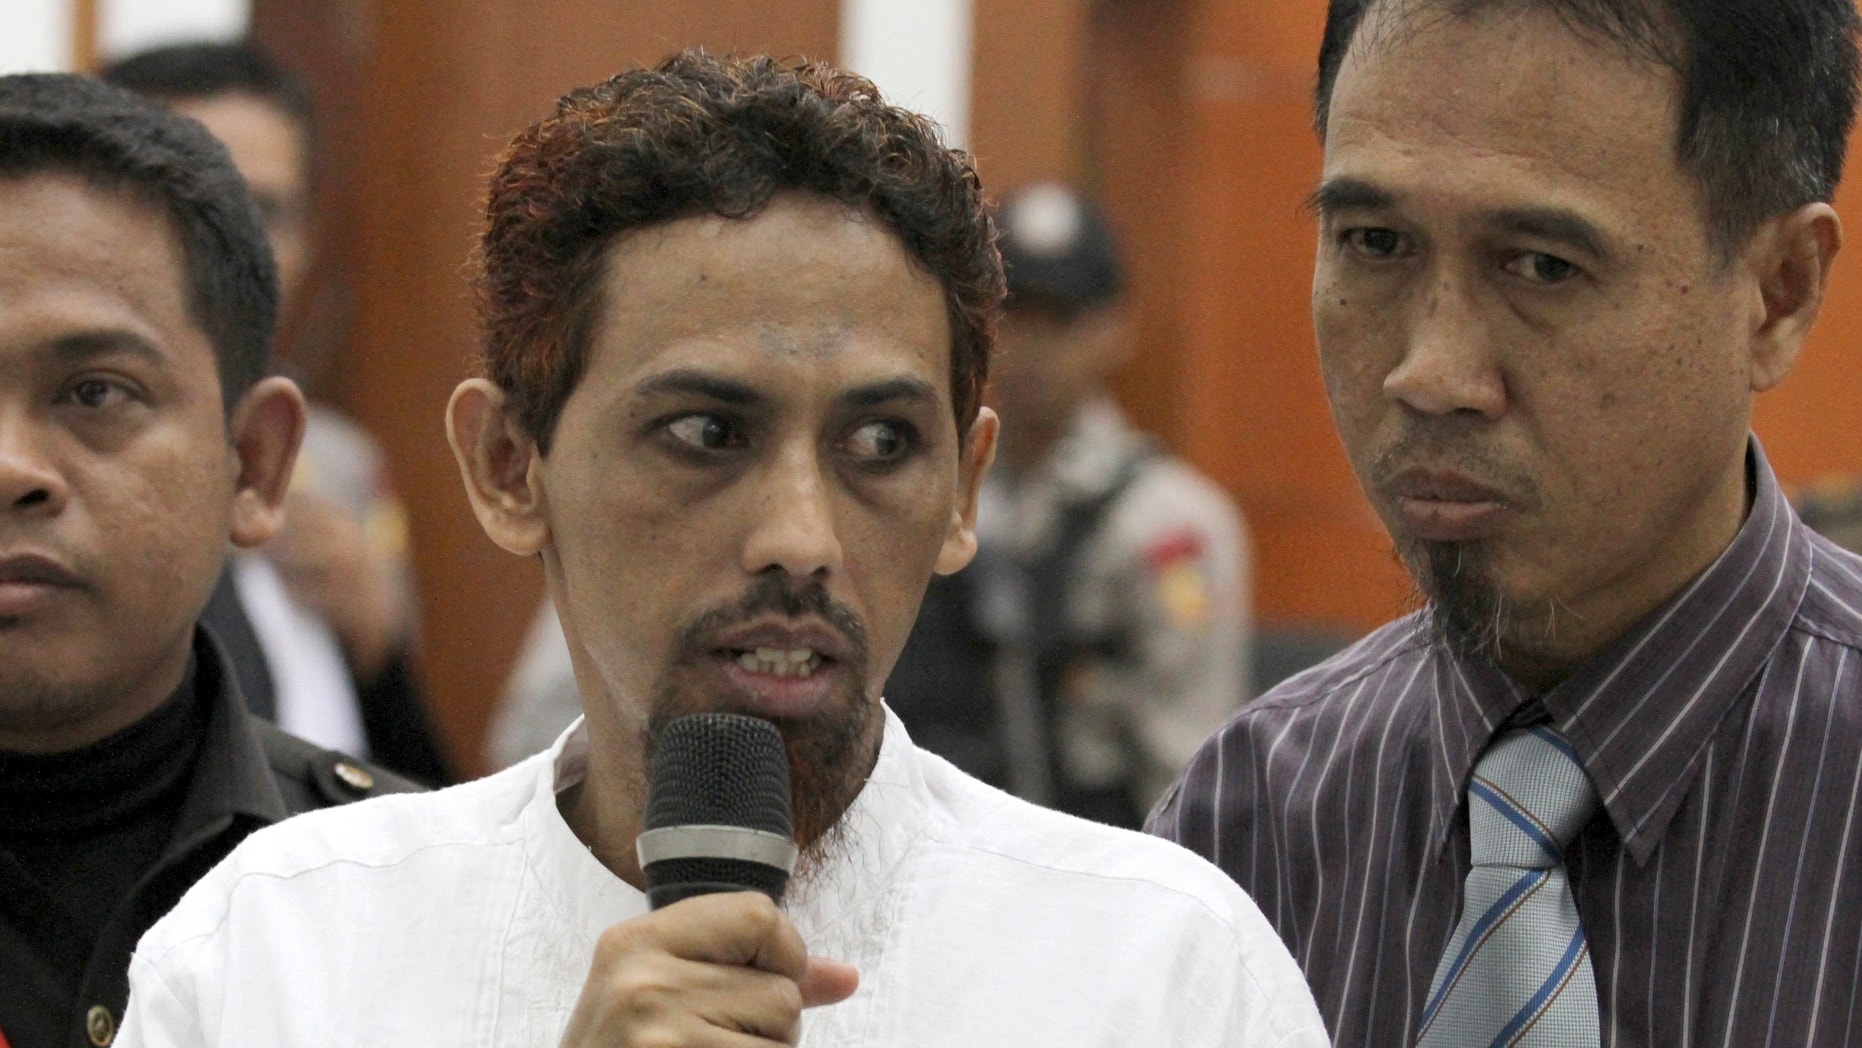 May 7, 2012: Indonesian militant Umar Patek, center, accompanied by his lawyer Ashludin Hatjani, right, speaks to the press during his trial at West Jakarta District Court in Jakarta, Indonesia.